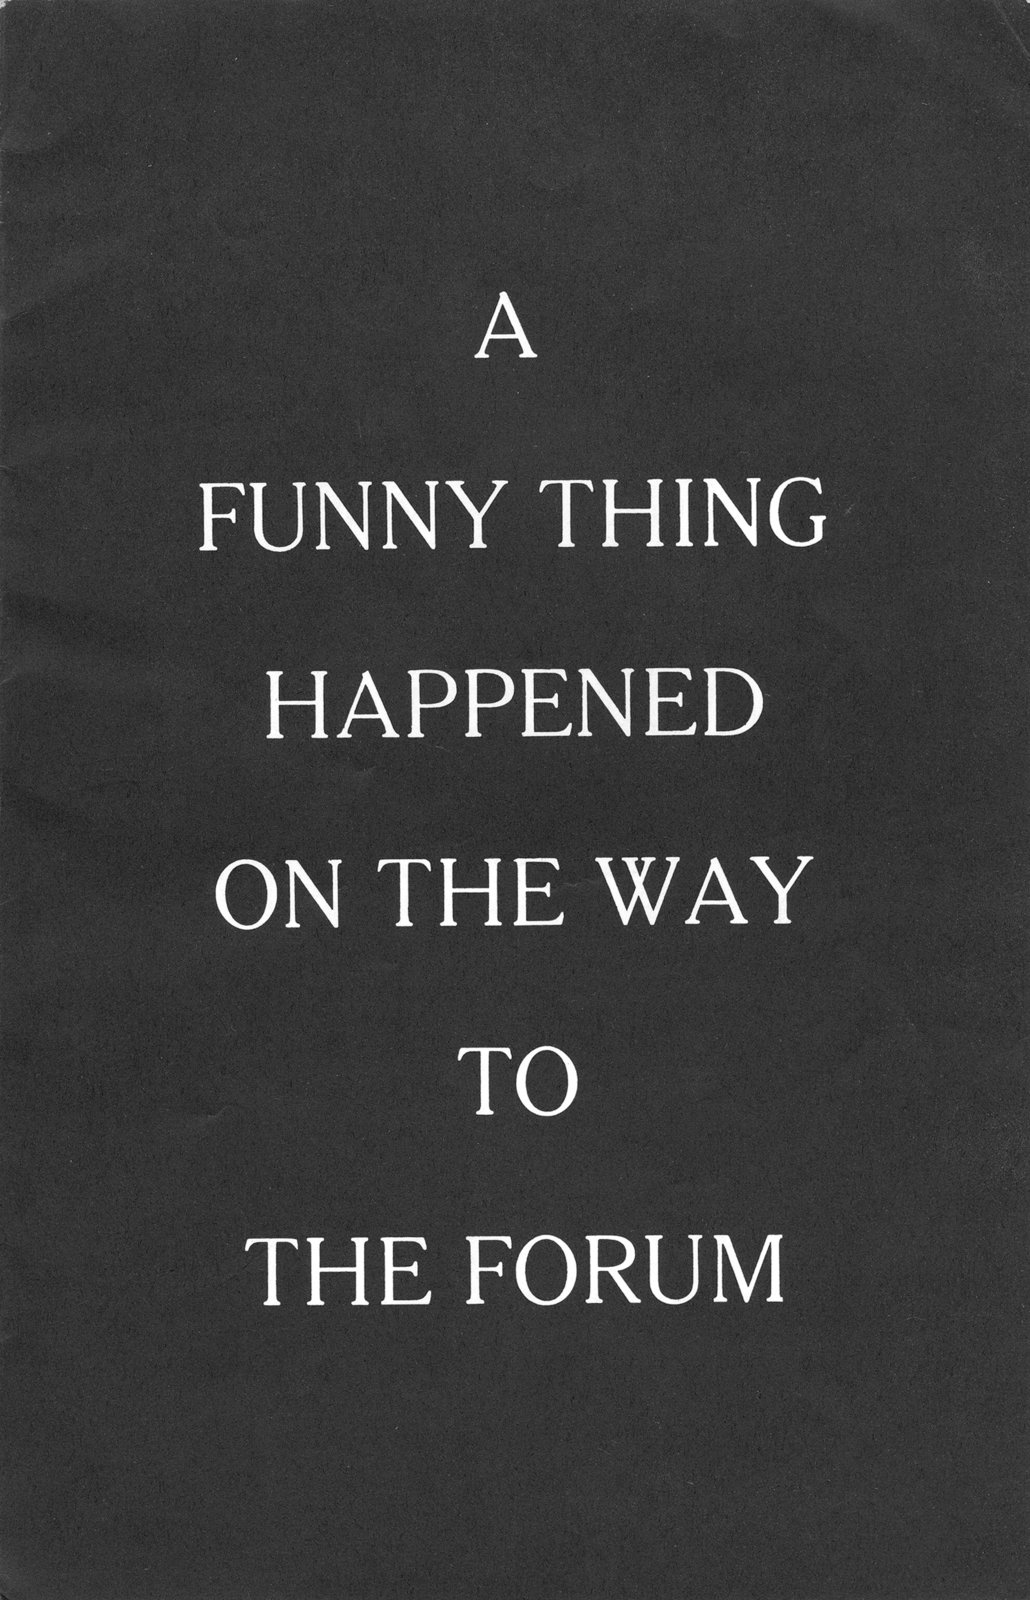 Waterloo Lutheran University Purple and Gold Revue proudly presents A funny thing happened on the way to the Forum